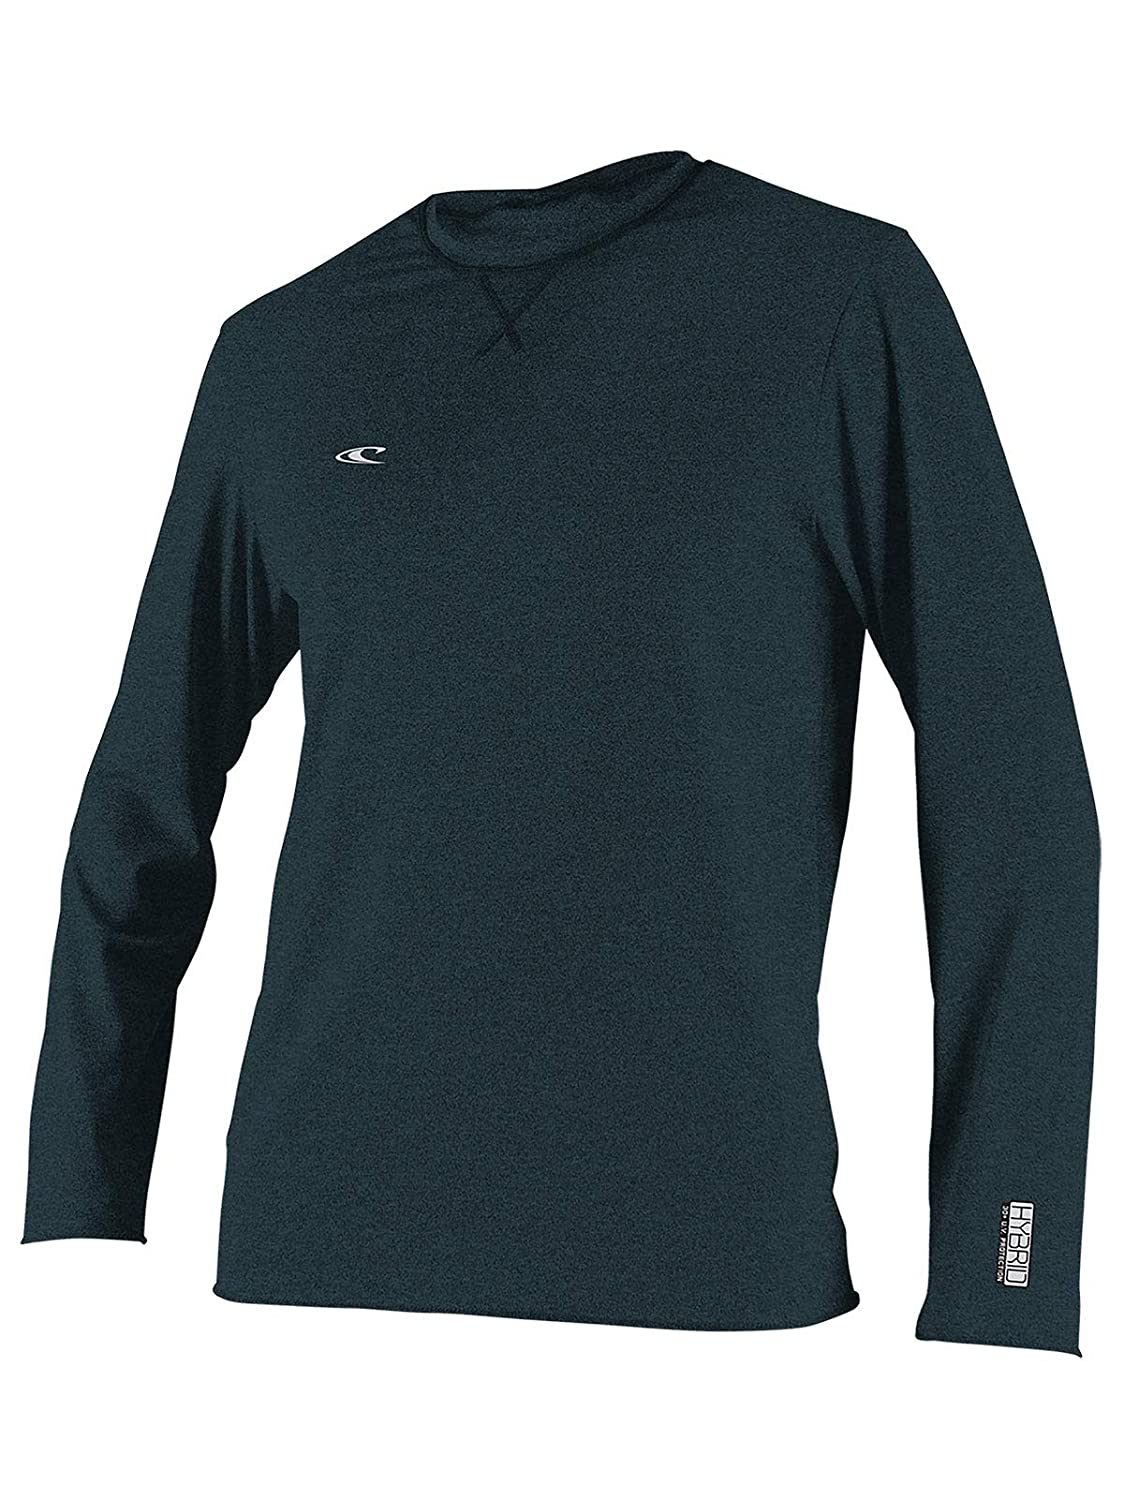 e6940b7c Amazon.com: O'Neill Men's Hybrid UPF 50+ Long Sleeve Sun Shirt: Sports &  Outdoors